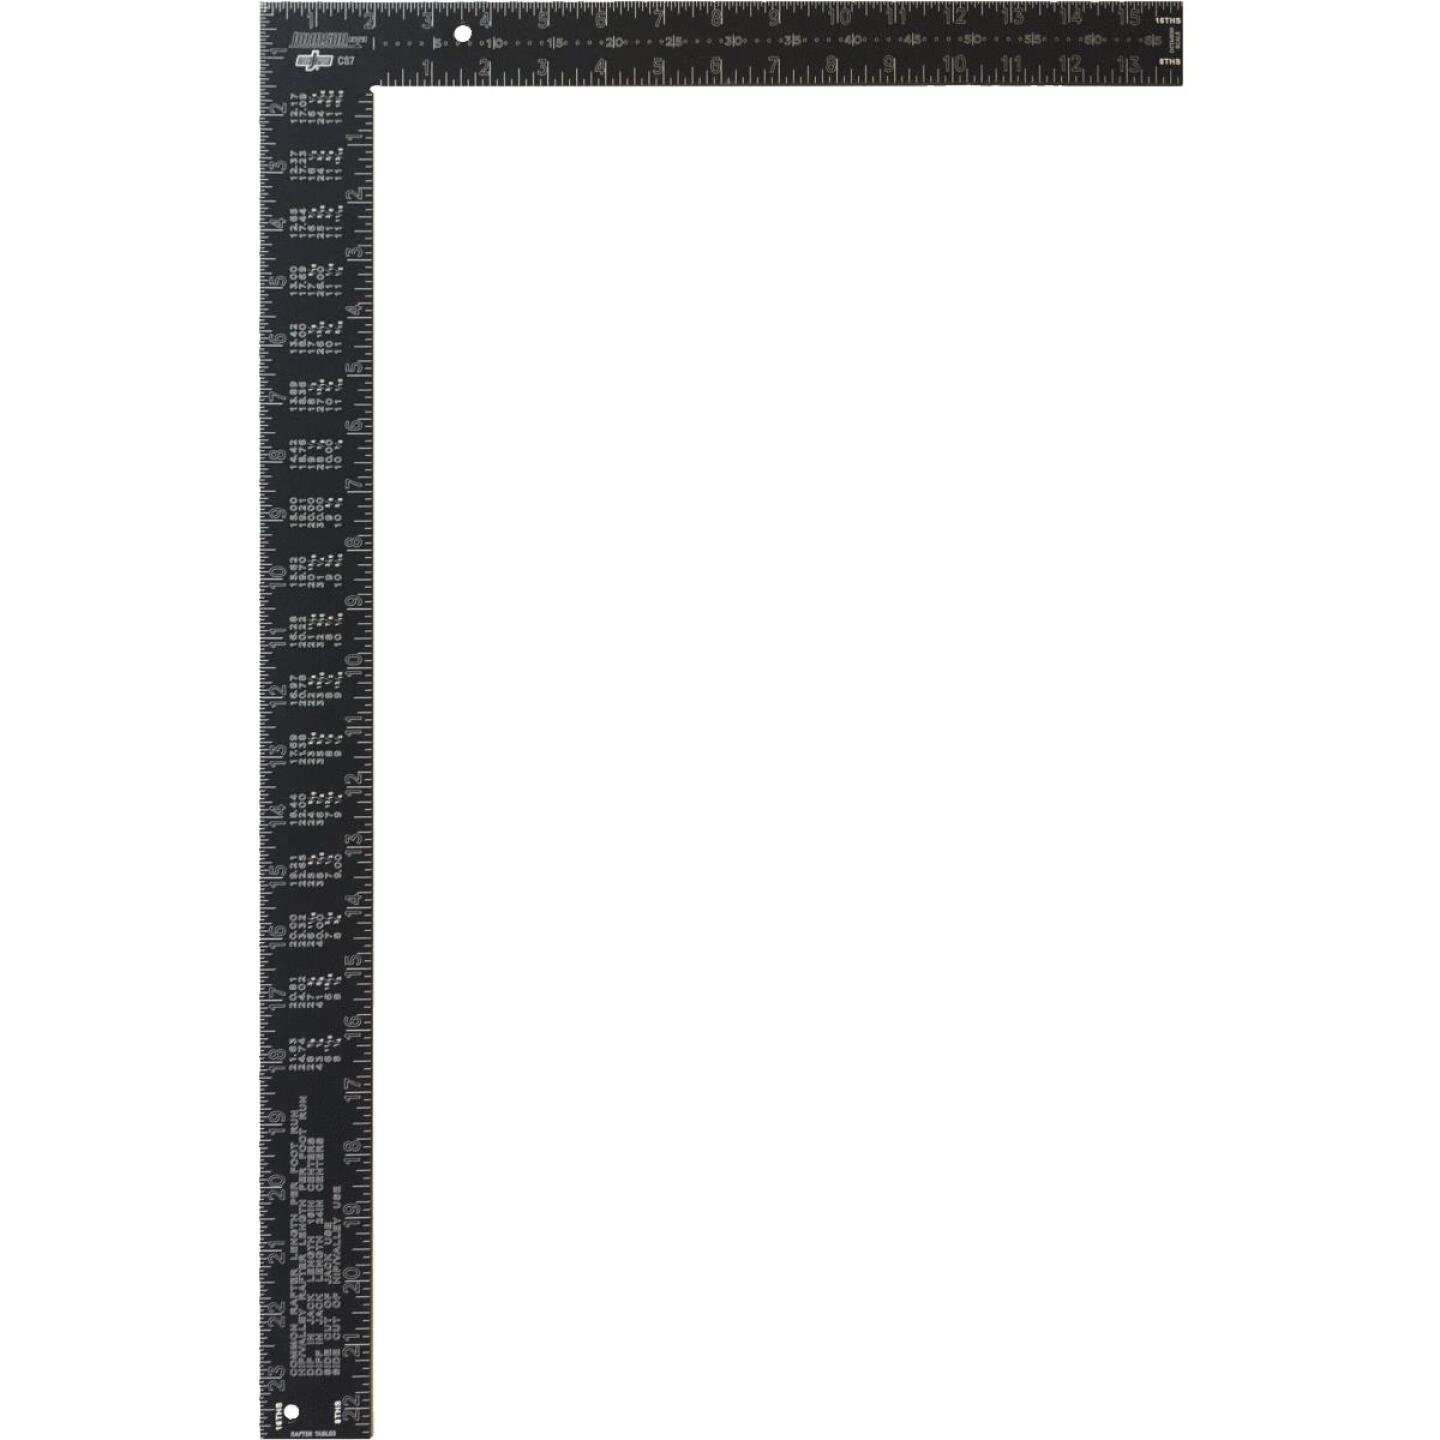 Johnson Level 16 In. x 24 In. Black Aluminum Big J Pro Carpenter's Square Image 1